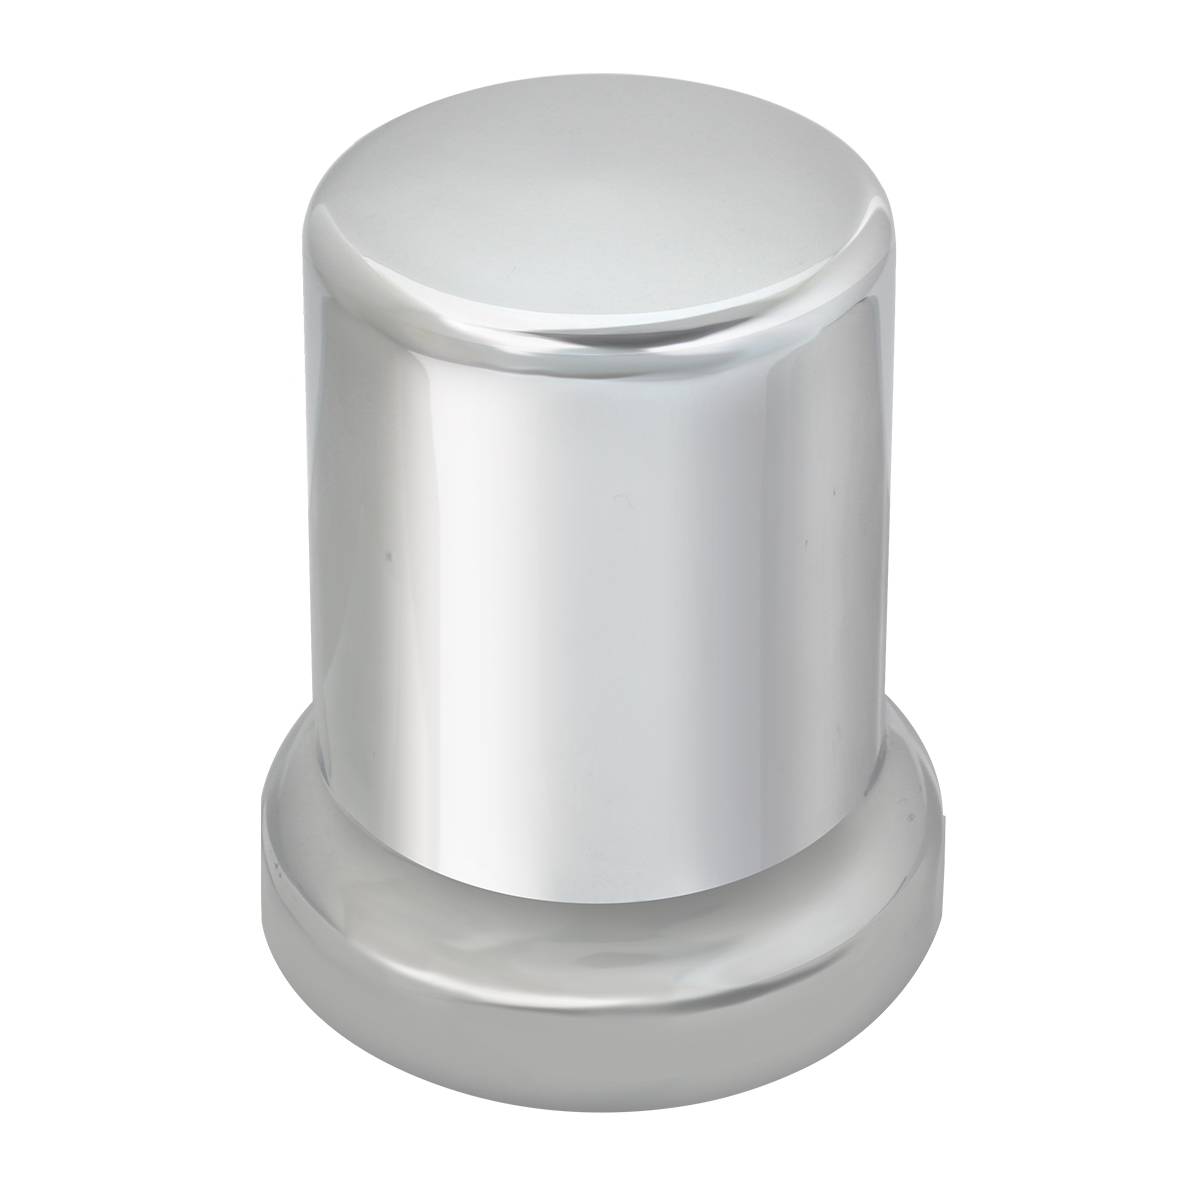 Tube Chrome Plastic Lug Nut Cover 2-1/2""